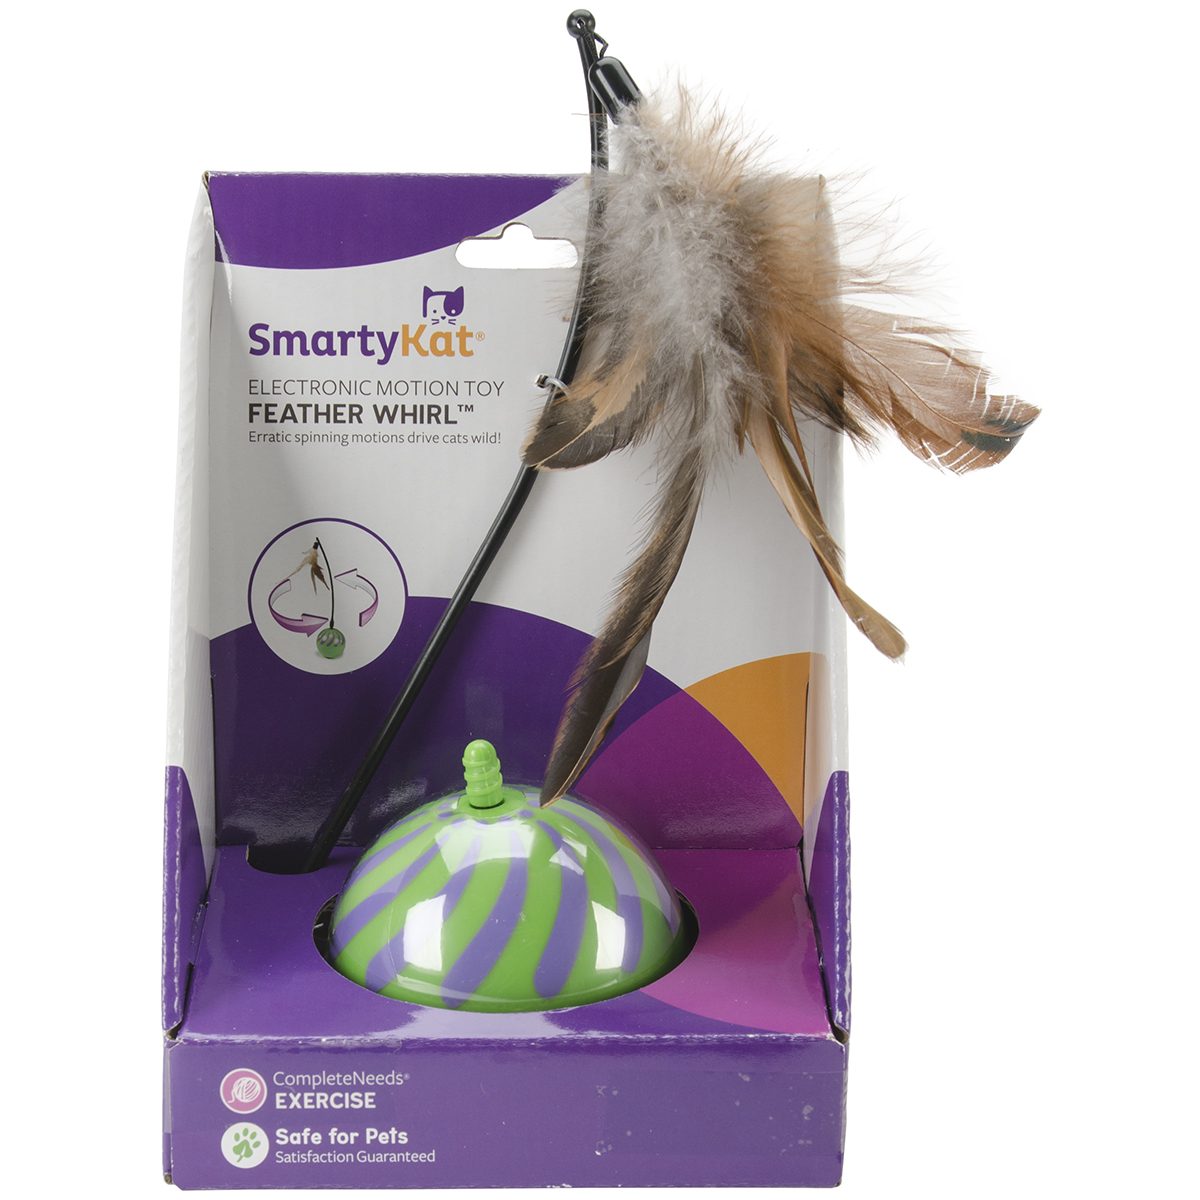 SmartyKat Feather Whirl Electronic Motion Cat Toy review